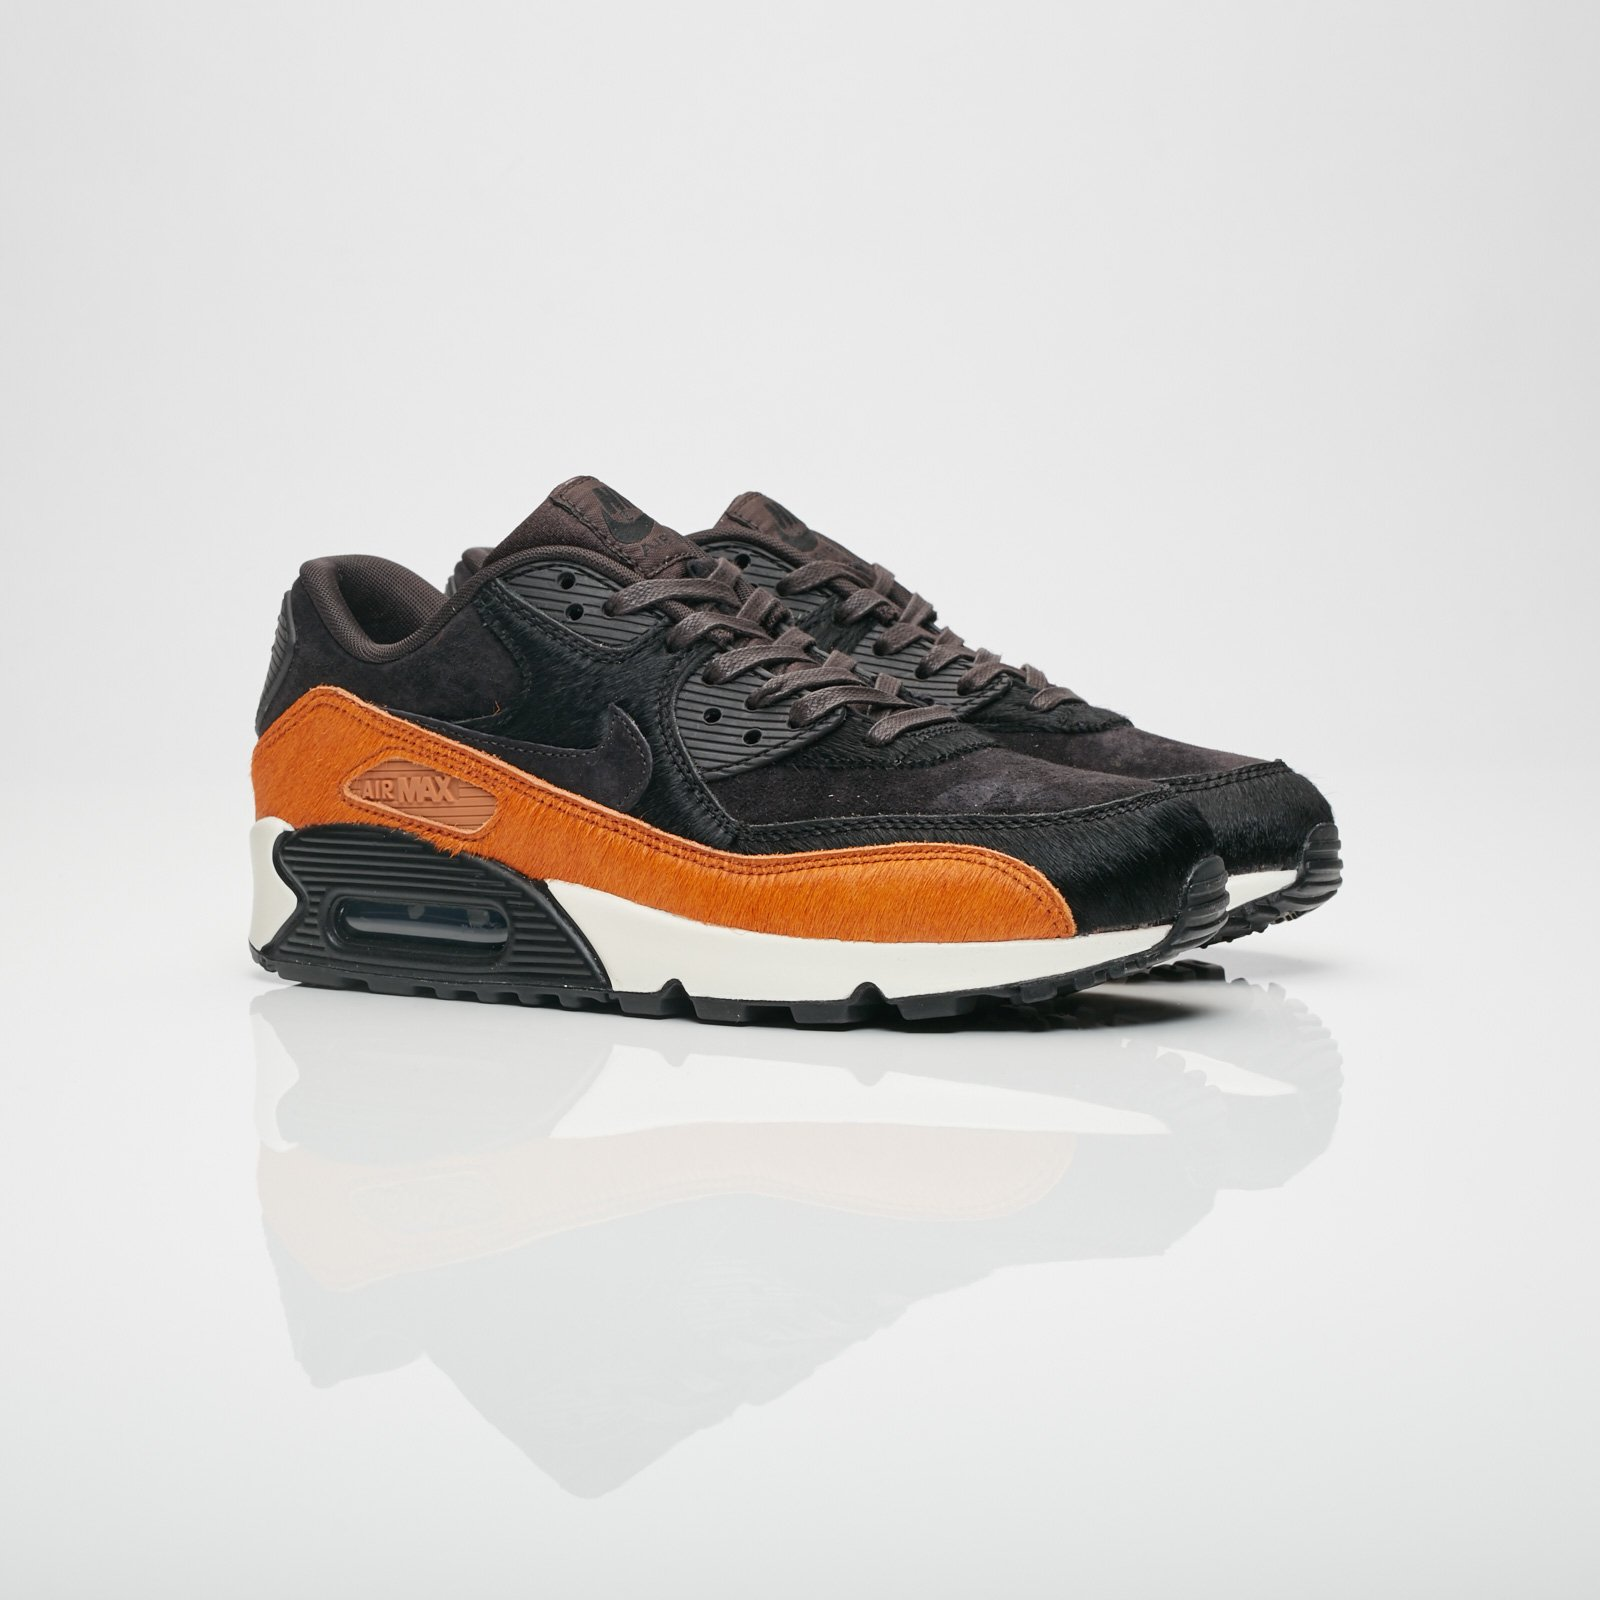 new product fe34f 40ea5 Nike Sportswear Wmns Air Max 90 LX